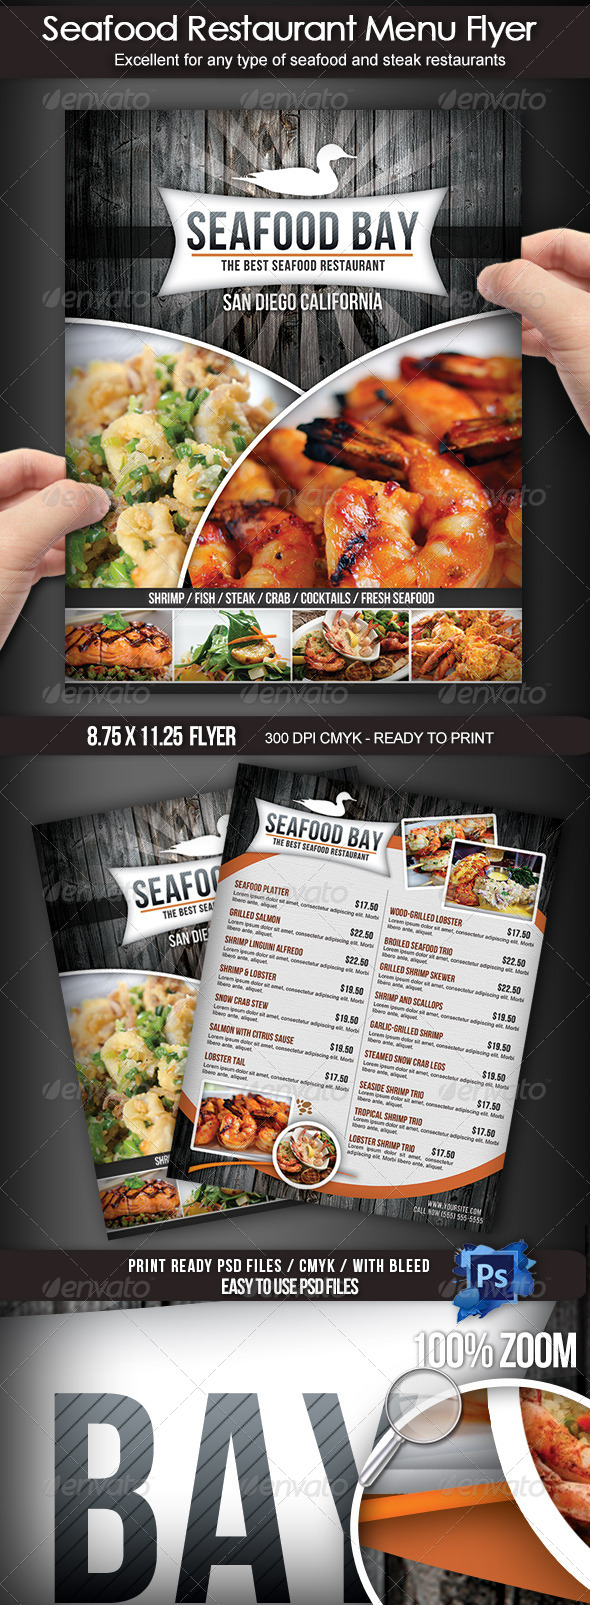 Seafood Restaurant Menu Flyer